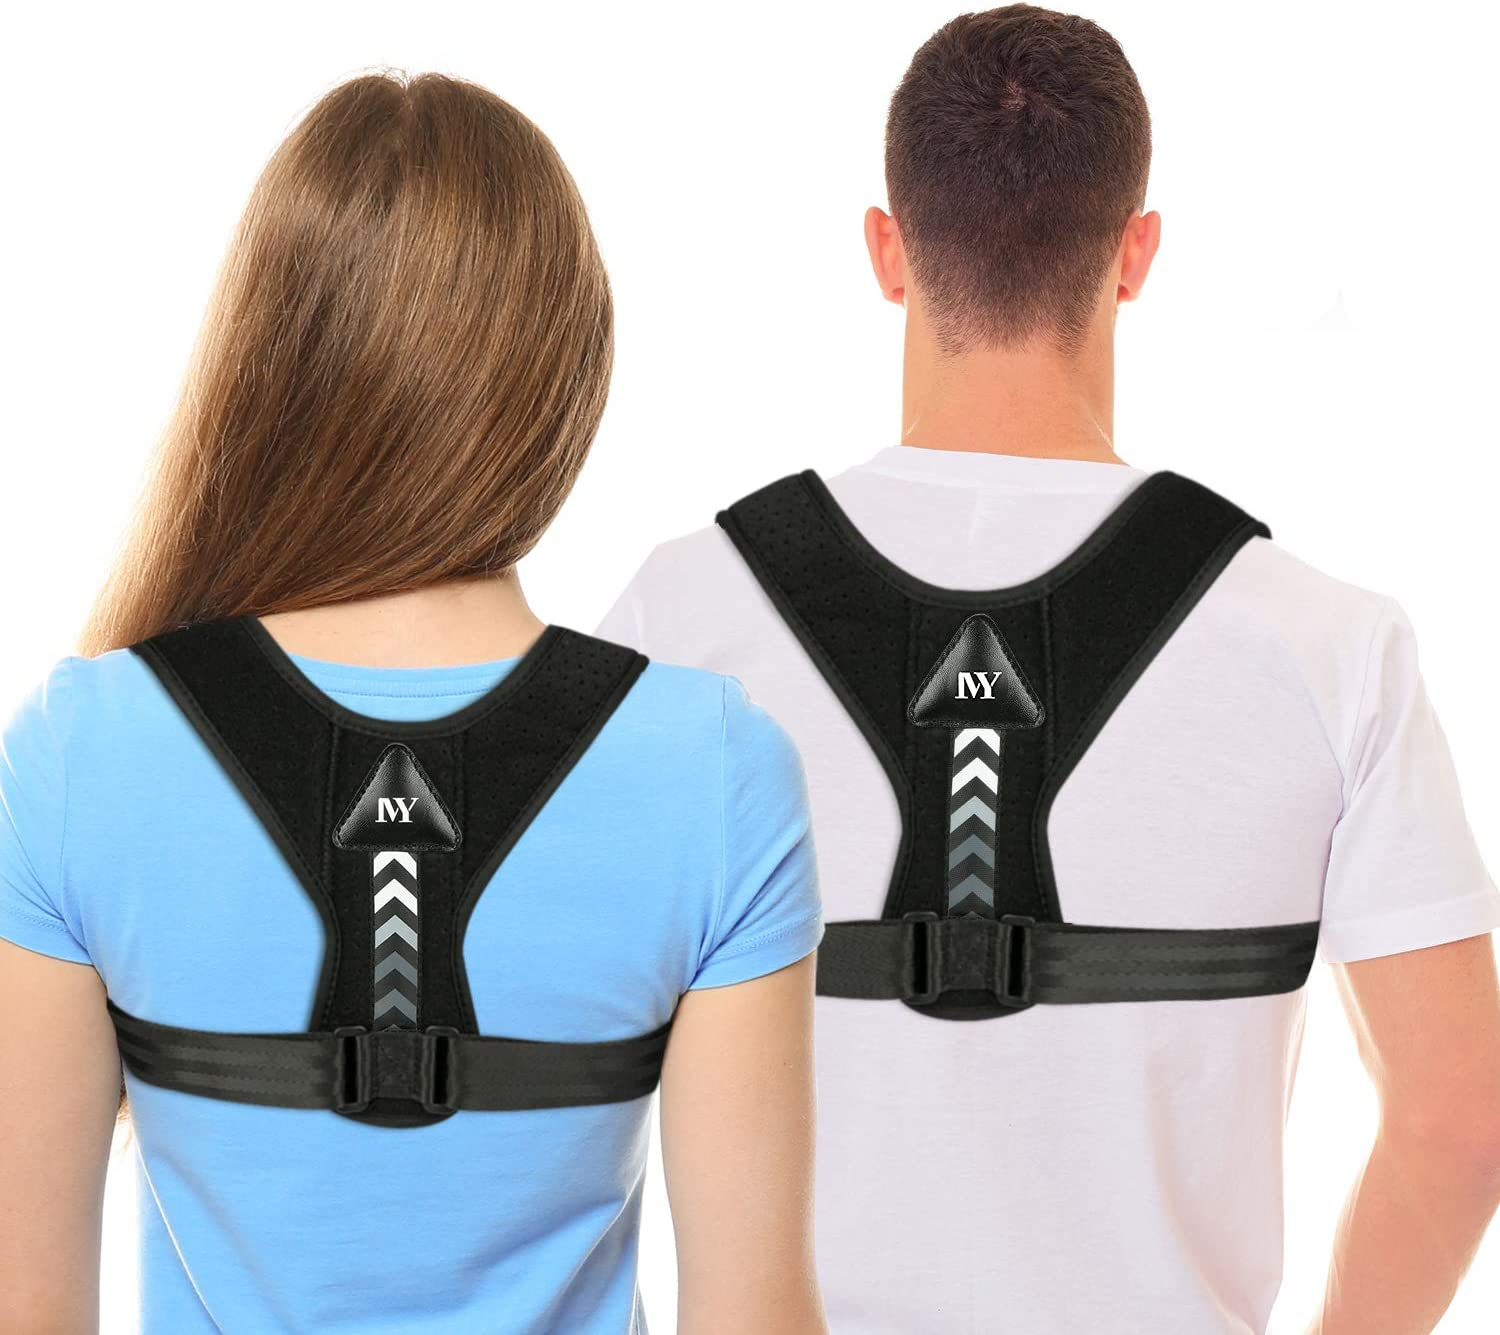 Posture Corrector for Men and Women,Updated Adjustable Upper Back Brace for Clavicle Support and Providing Pain Relief from Neck, Back and Shoulder(Universal) (Style-1)